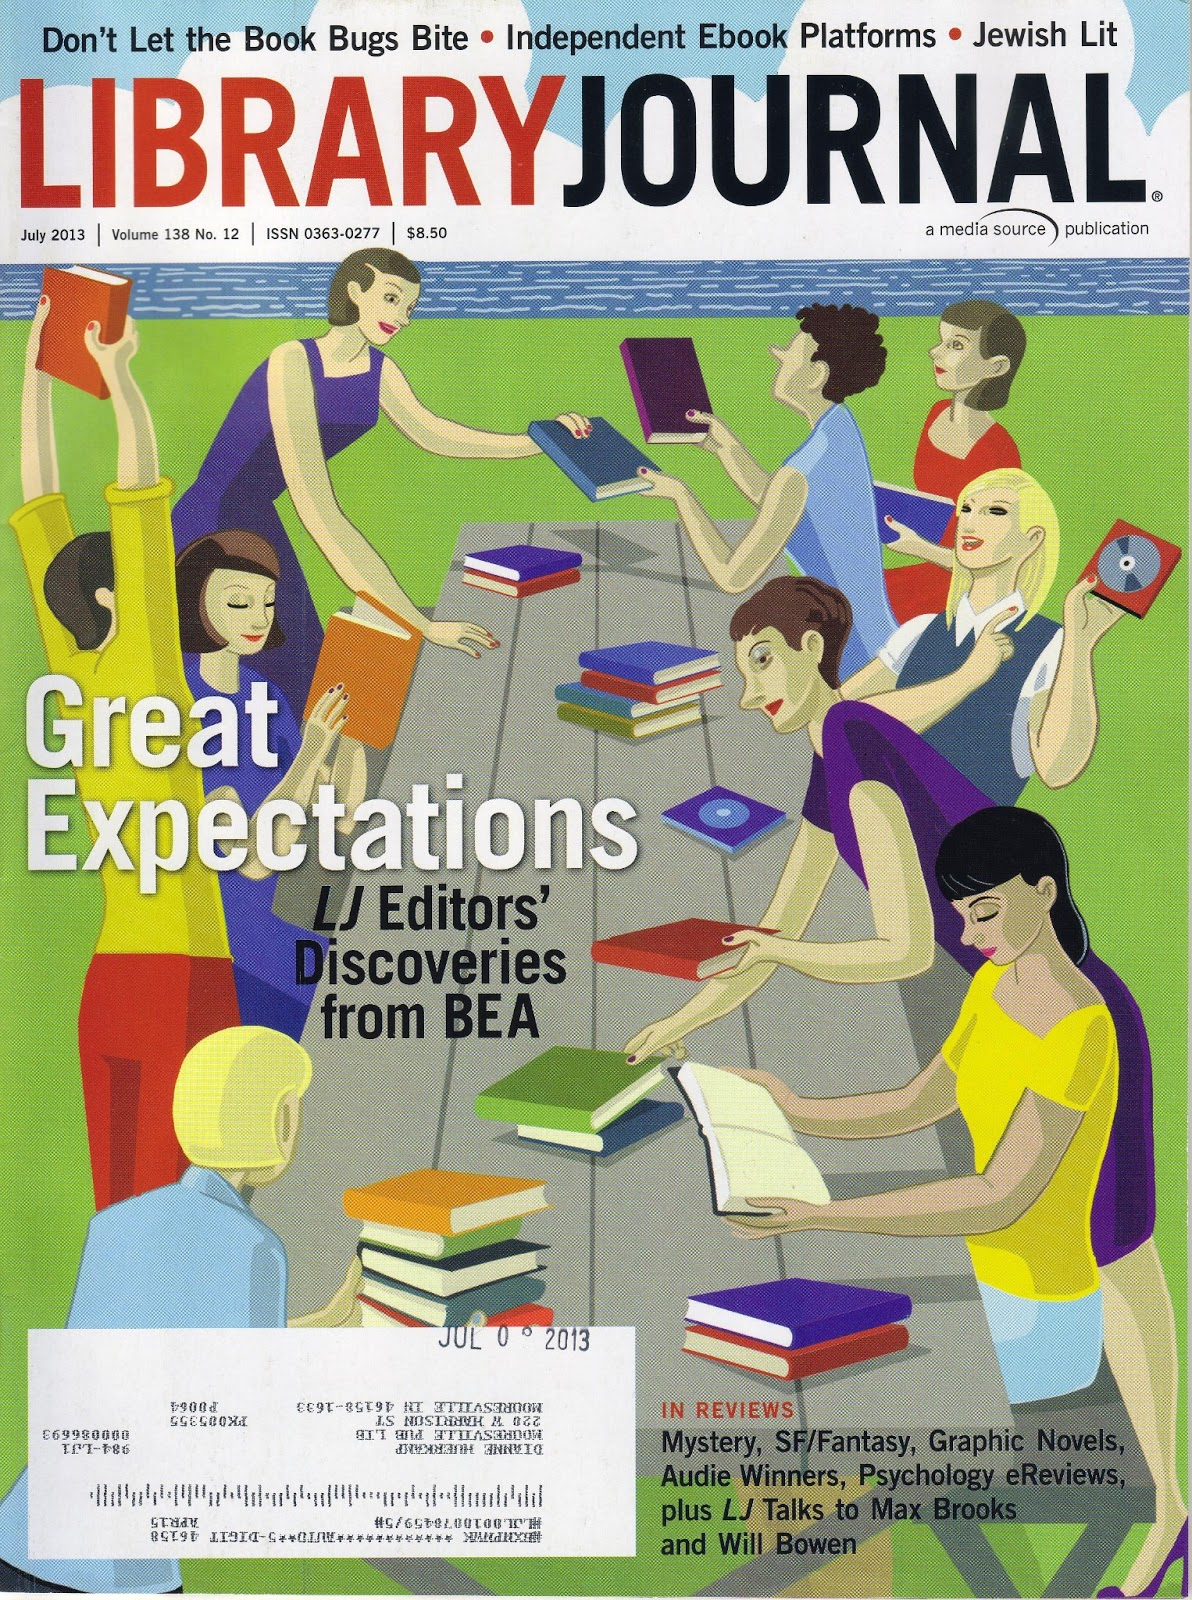 Cat39s Eye View MPL Library Journal Showcases Browser